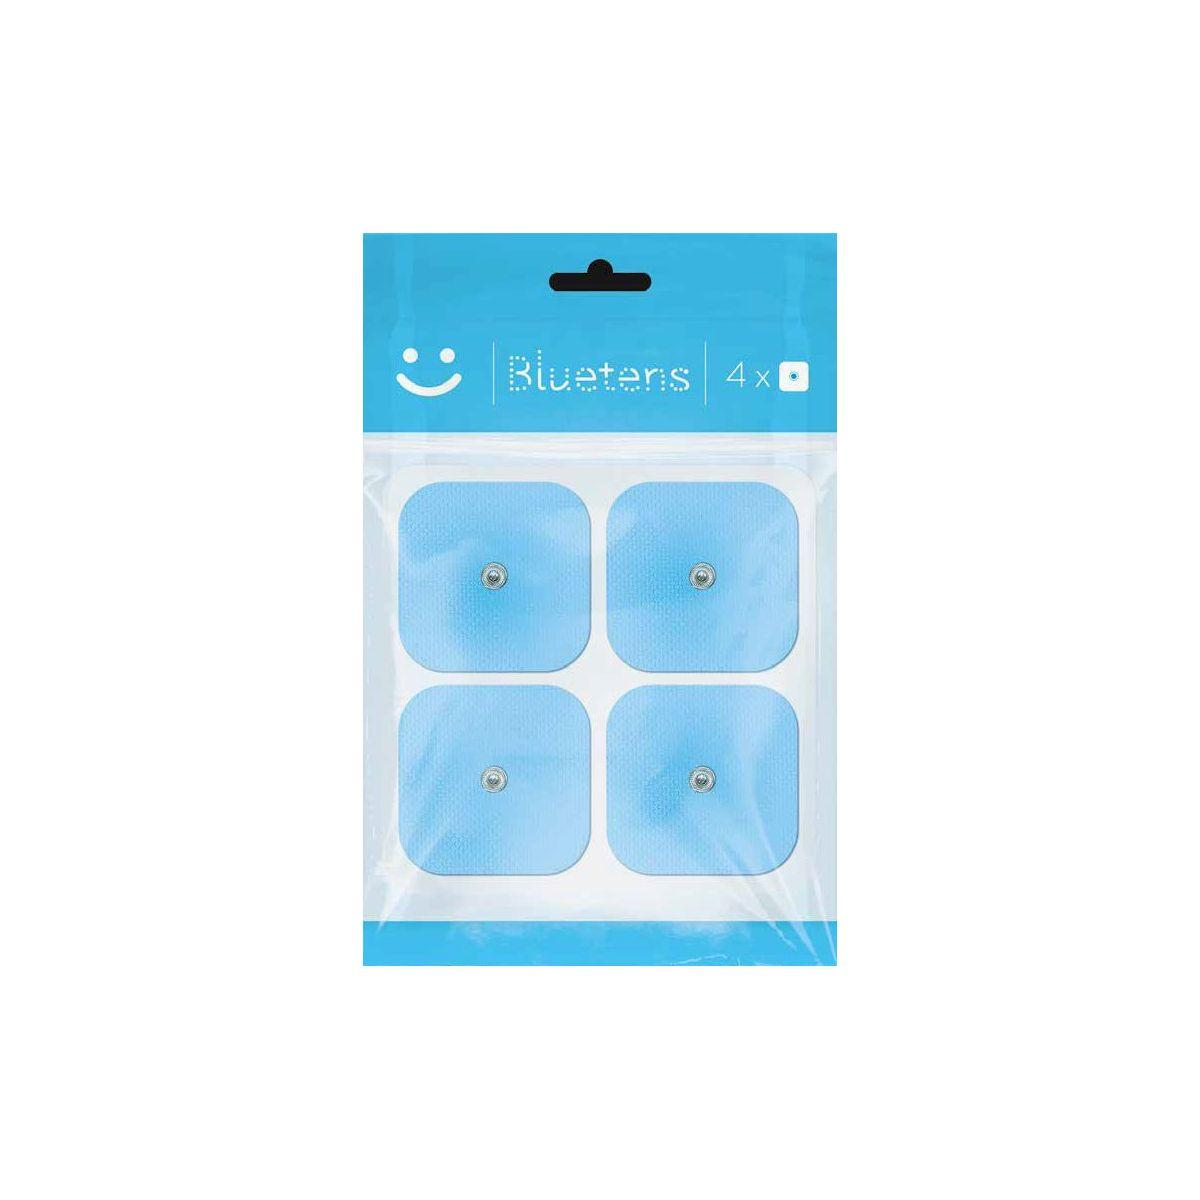 Electrode bluetens pack de 4 electrodes s (photo)